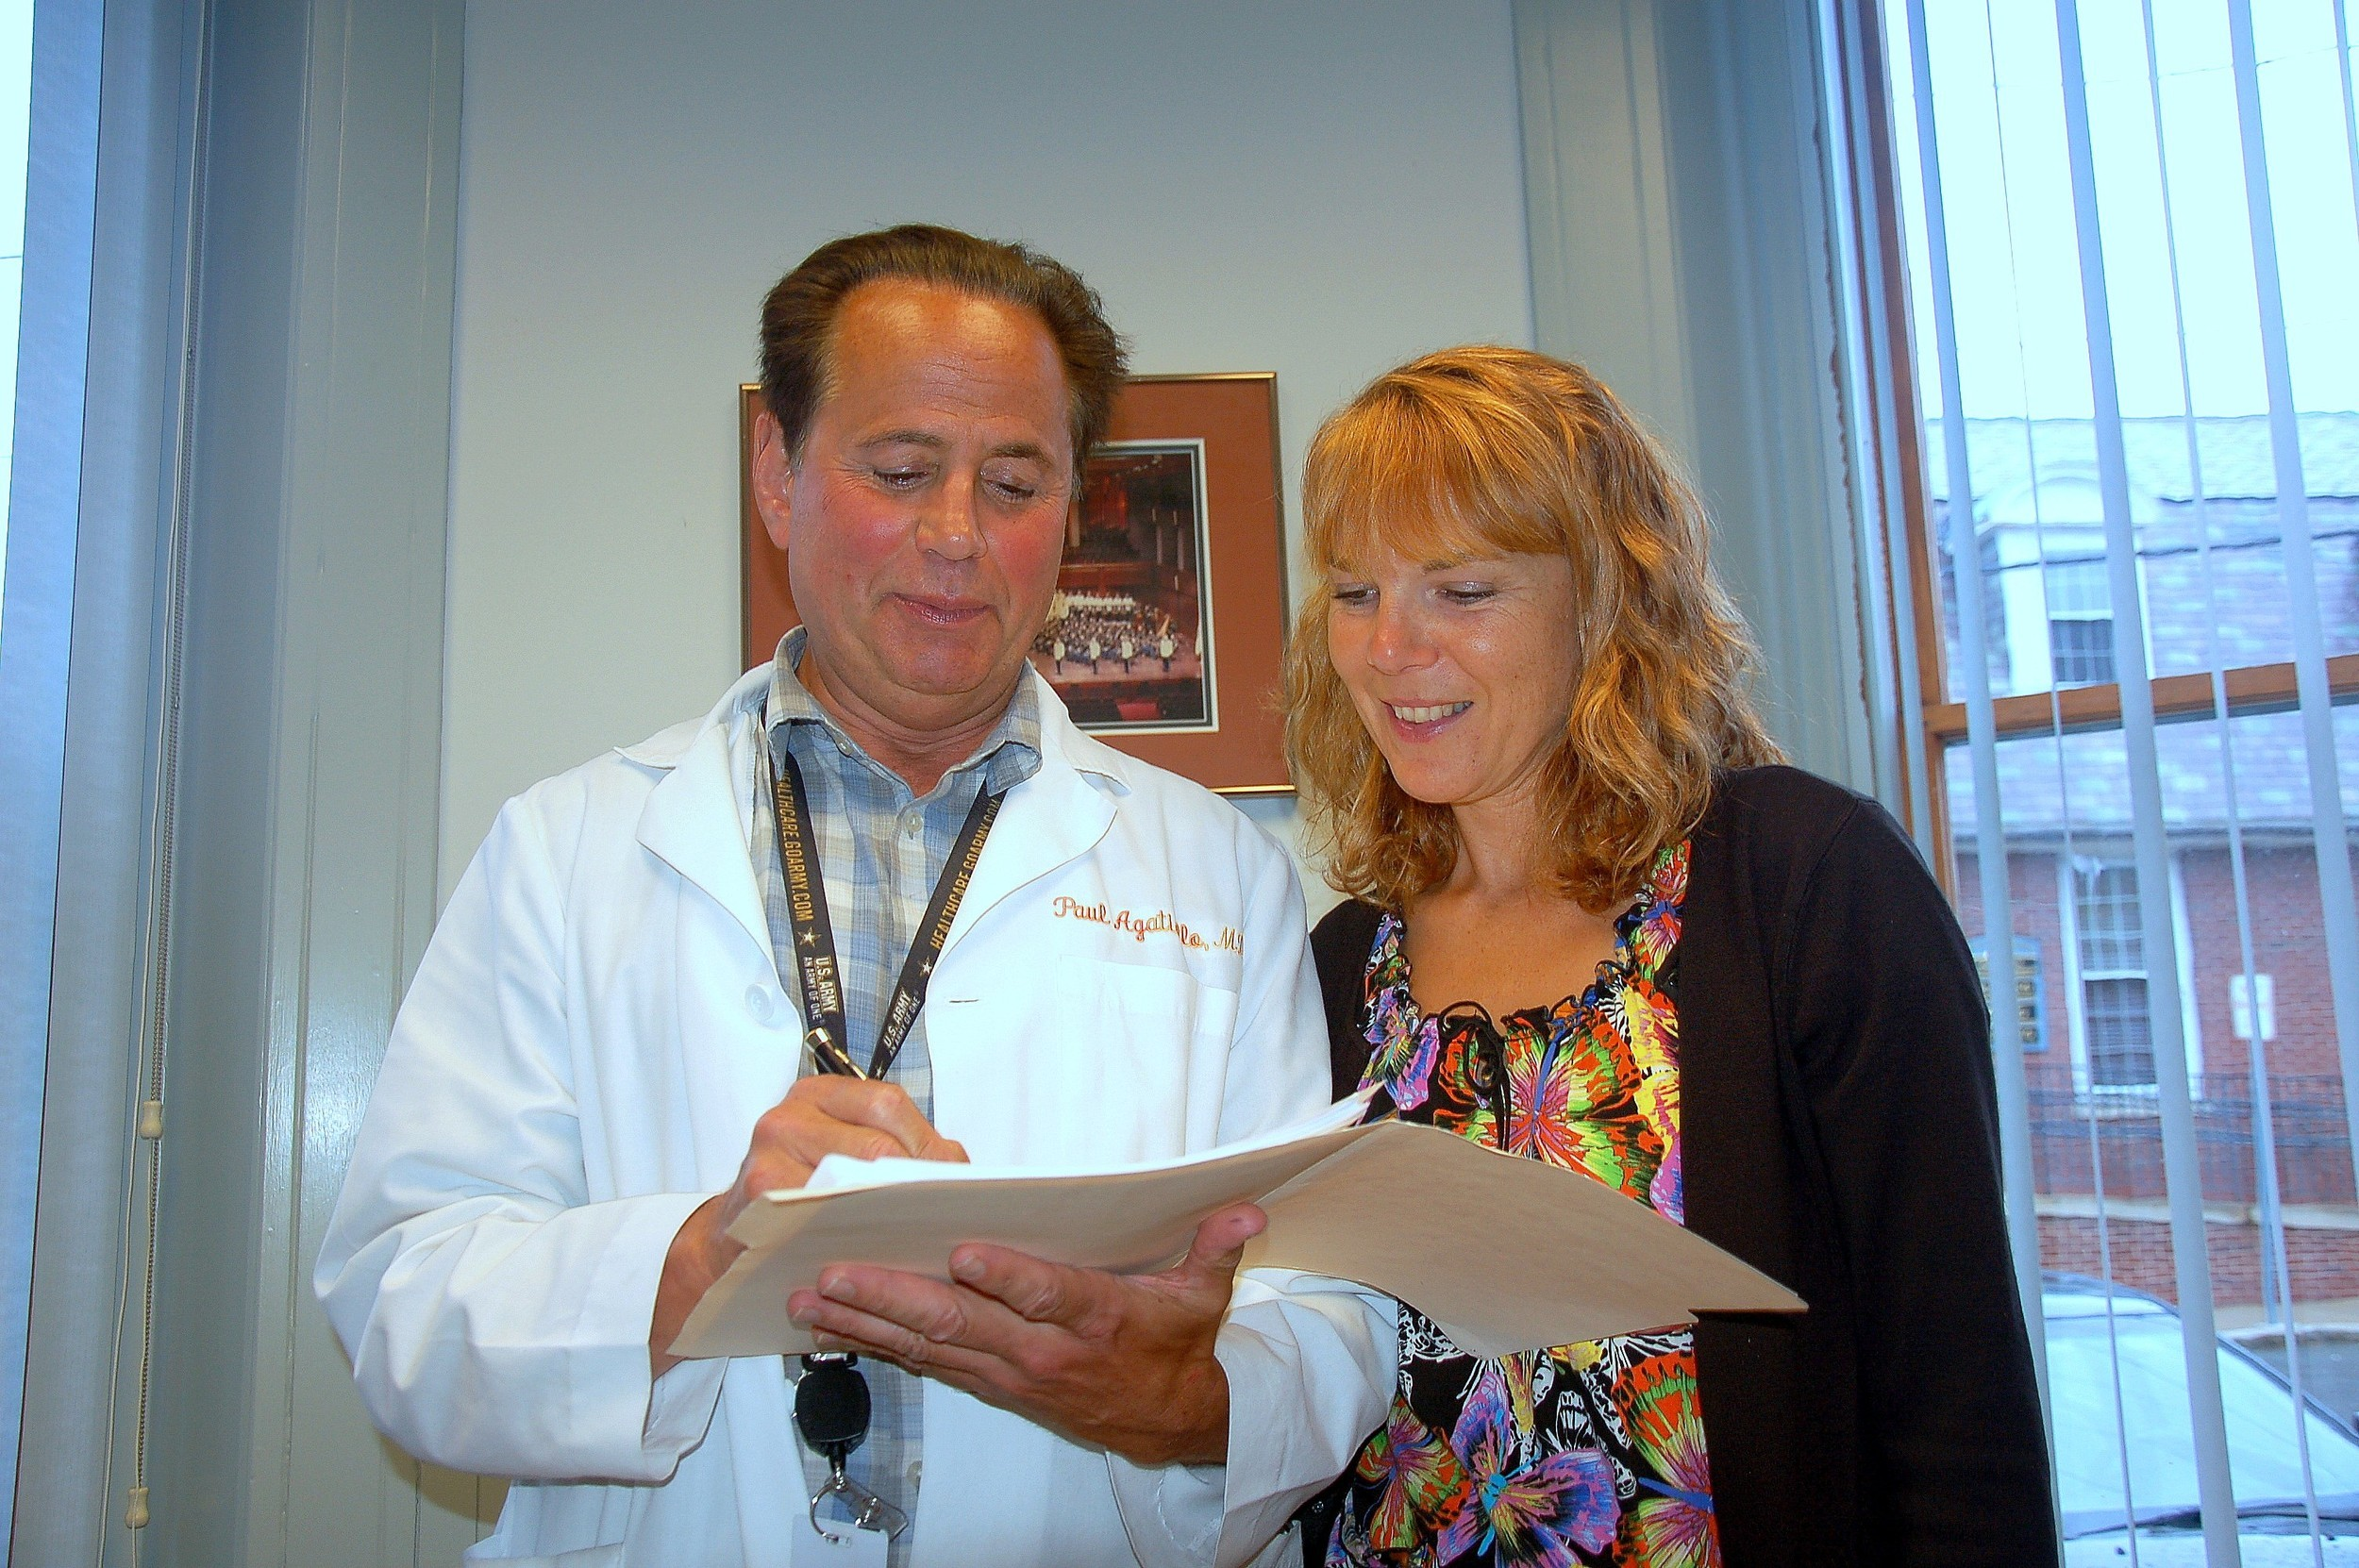 Dr. Paul J. Agatiello (left) and registered nurse Rosemary Plamondon go over final details of the new free medical advice clinic which officially opens on July 25 in the Burnside Building.